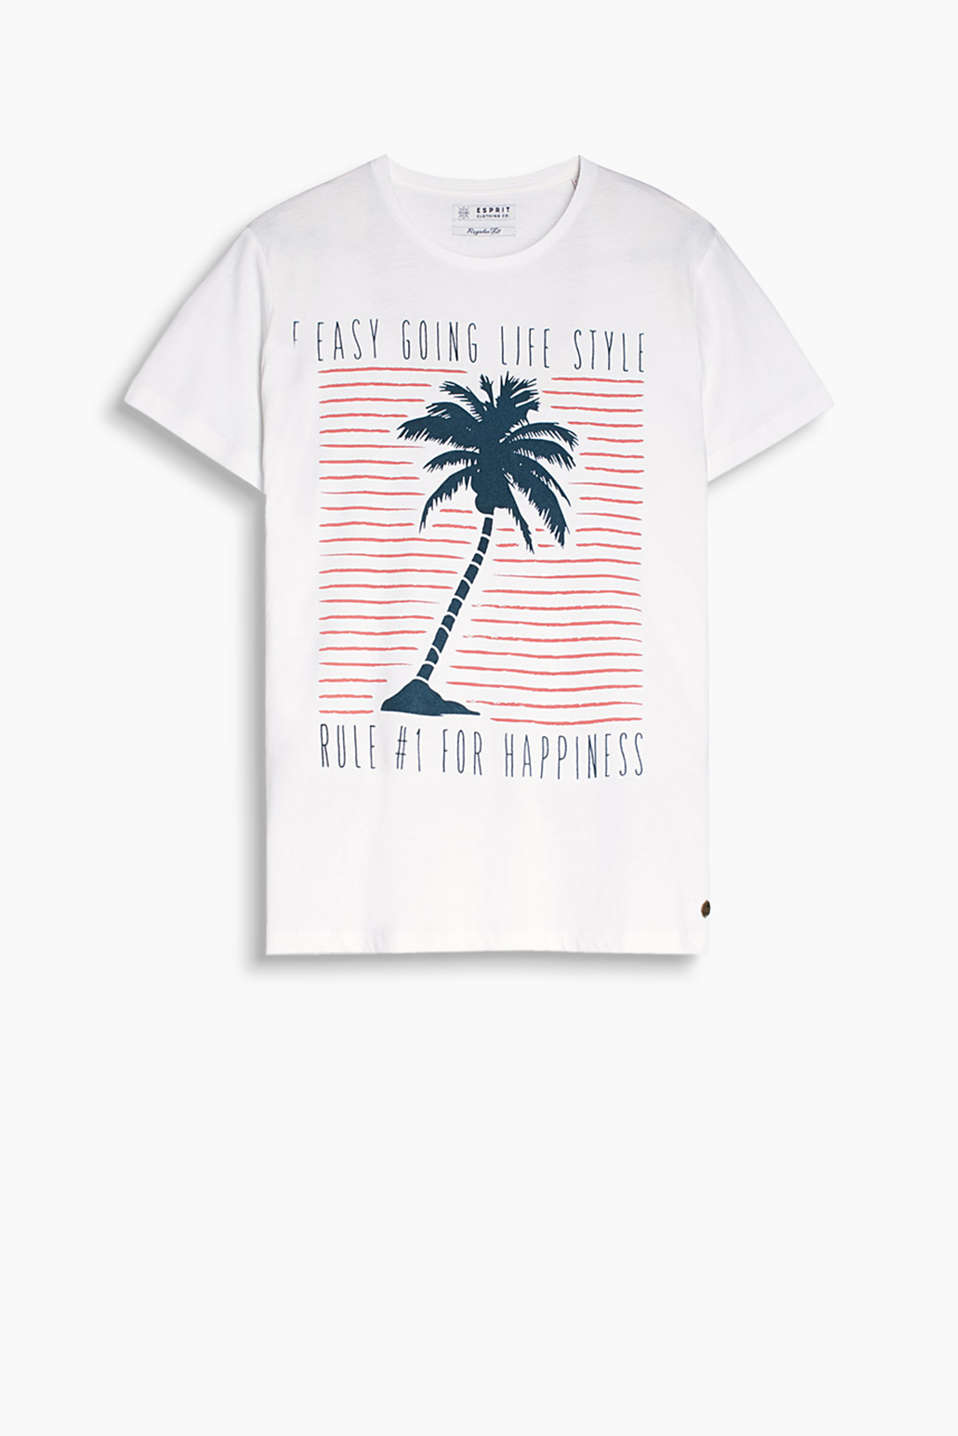 Velvety palm tree print T-shirt made of 100% cotton